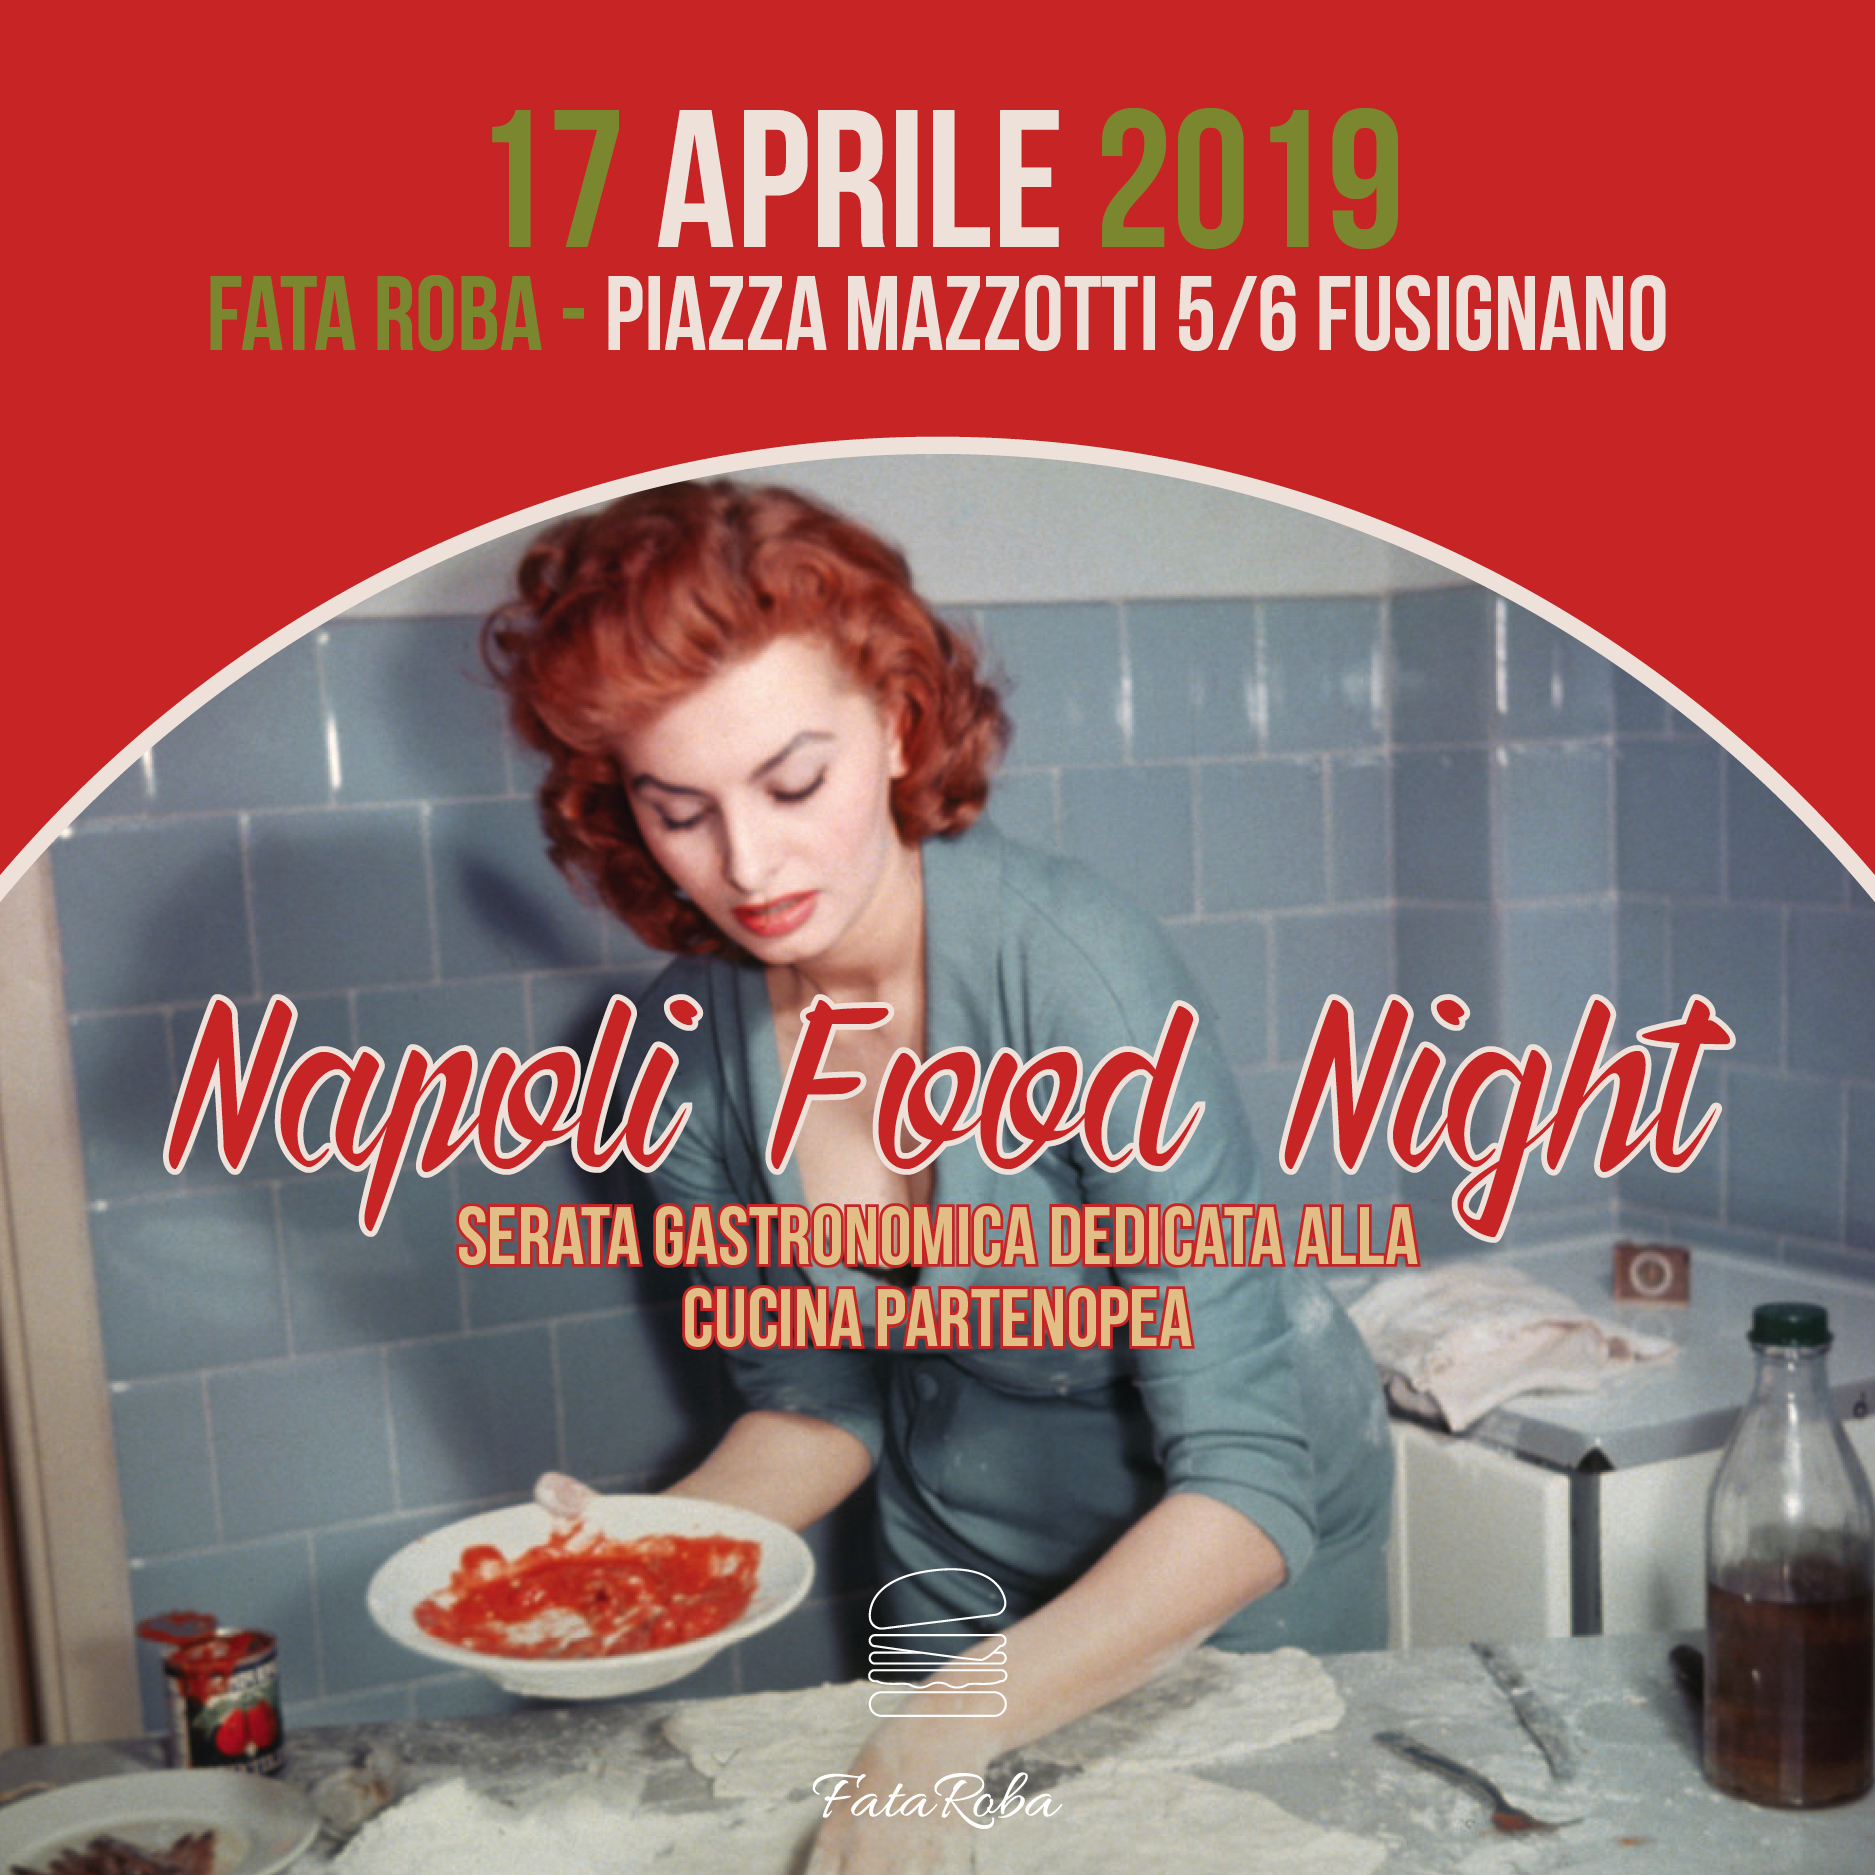 Fata Roba Napoli Food Night